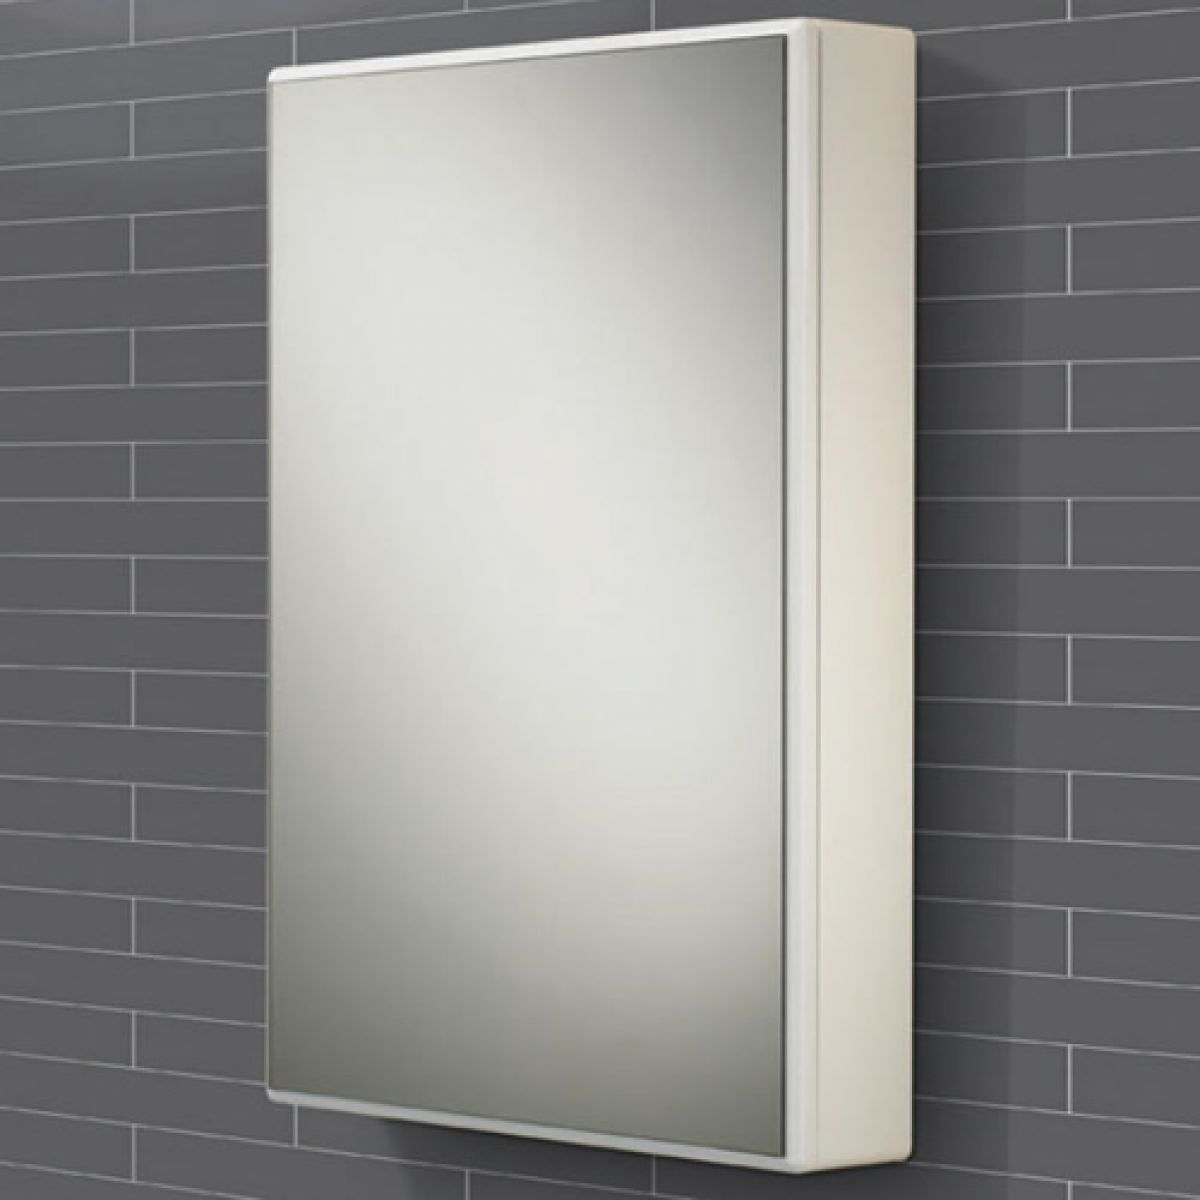 Hib Tulsa Mirrored Bathroom Cabinet Uk Bathrooms